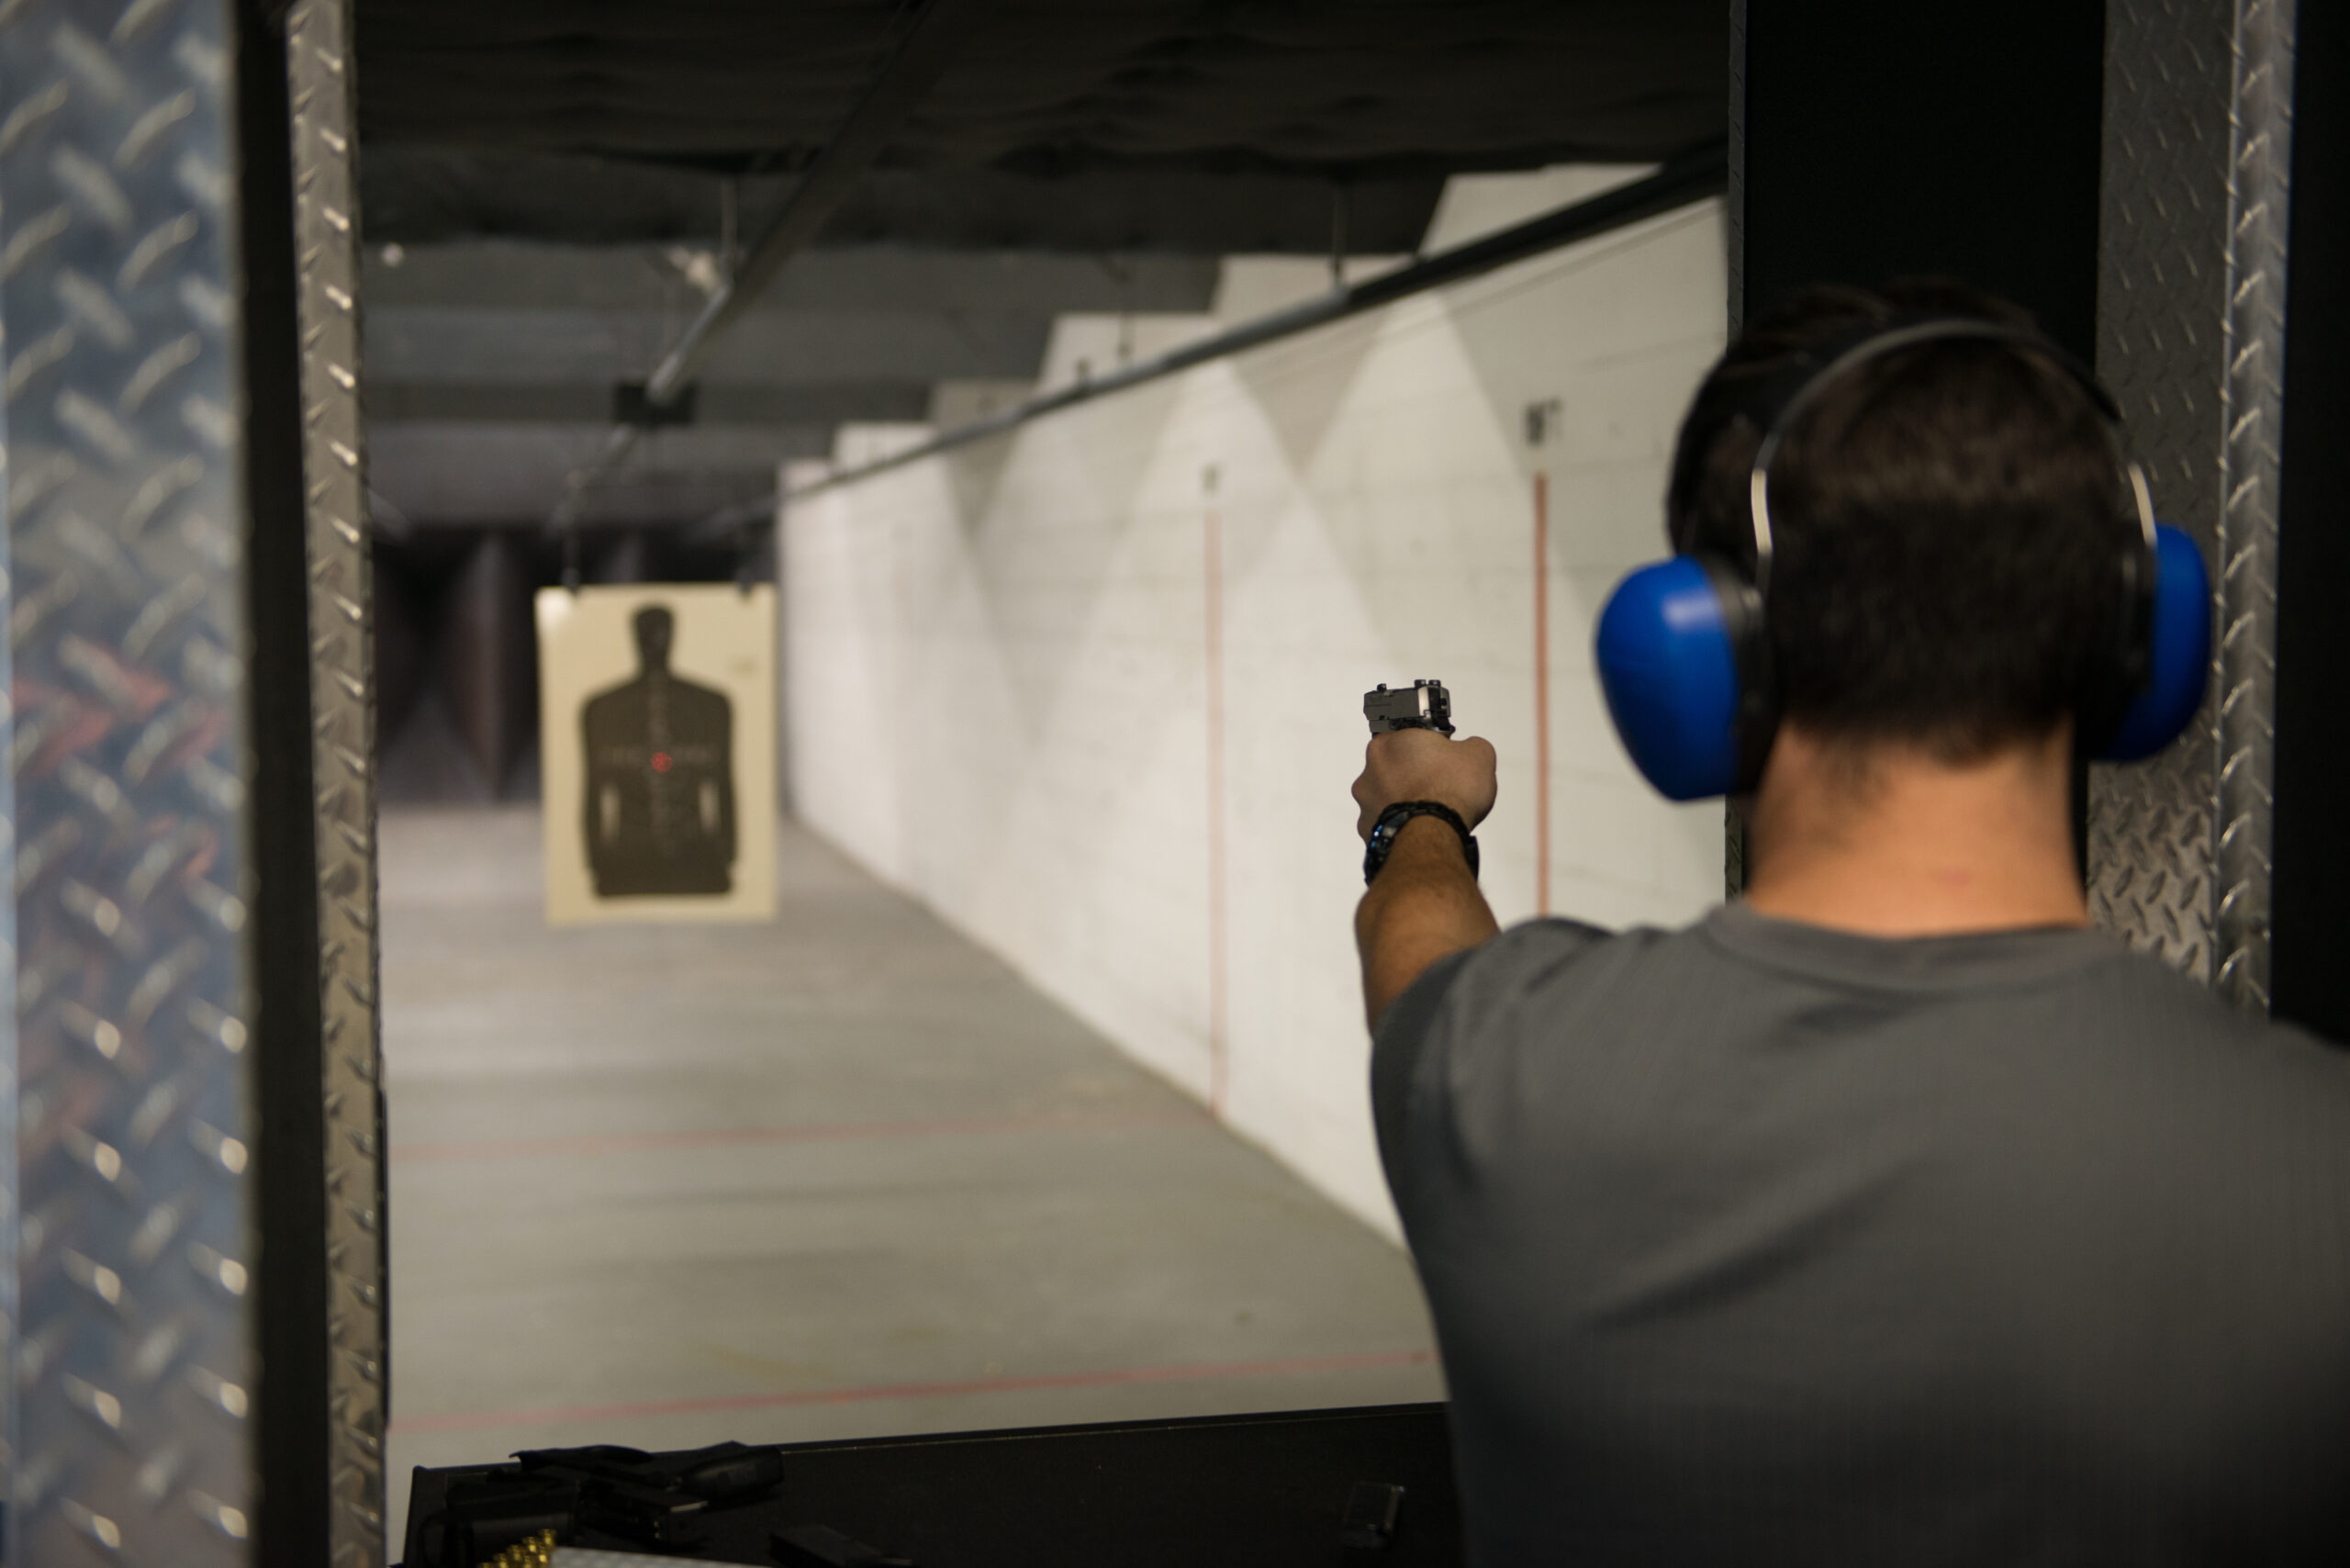 Make Gun Training Classes Normal Again